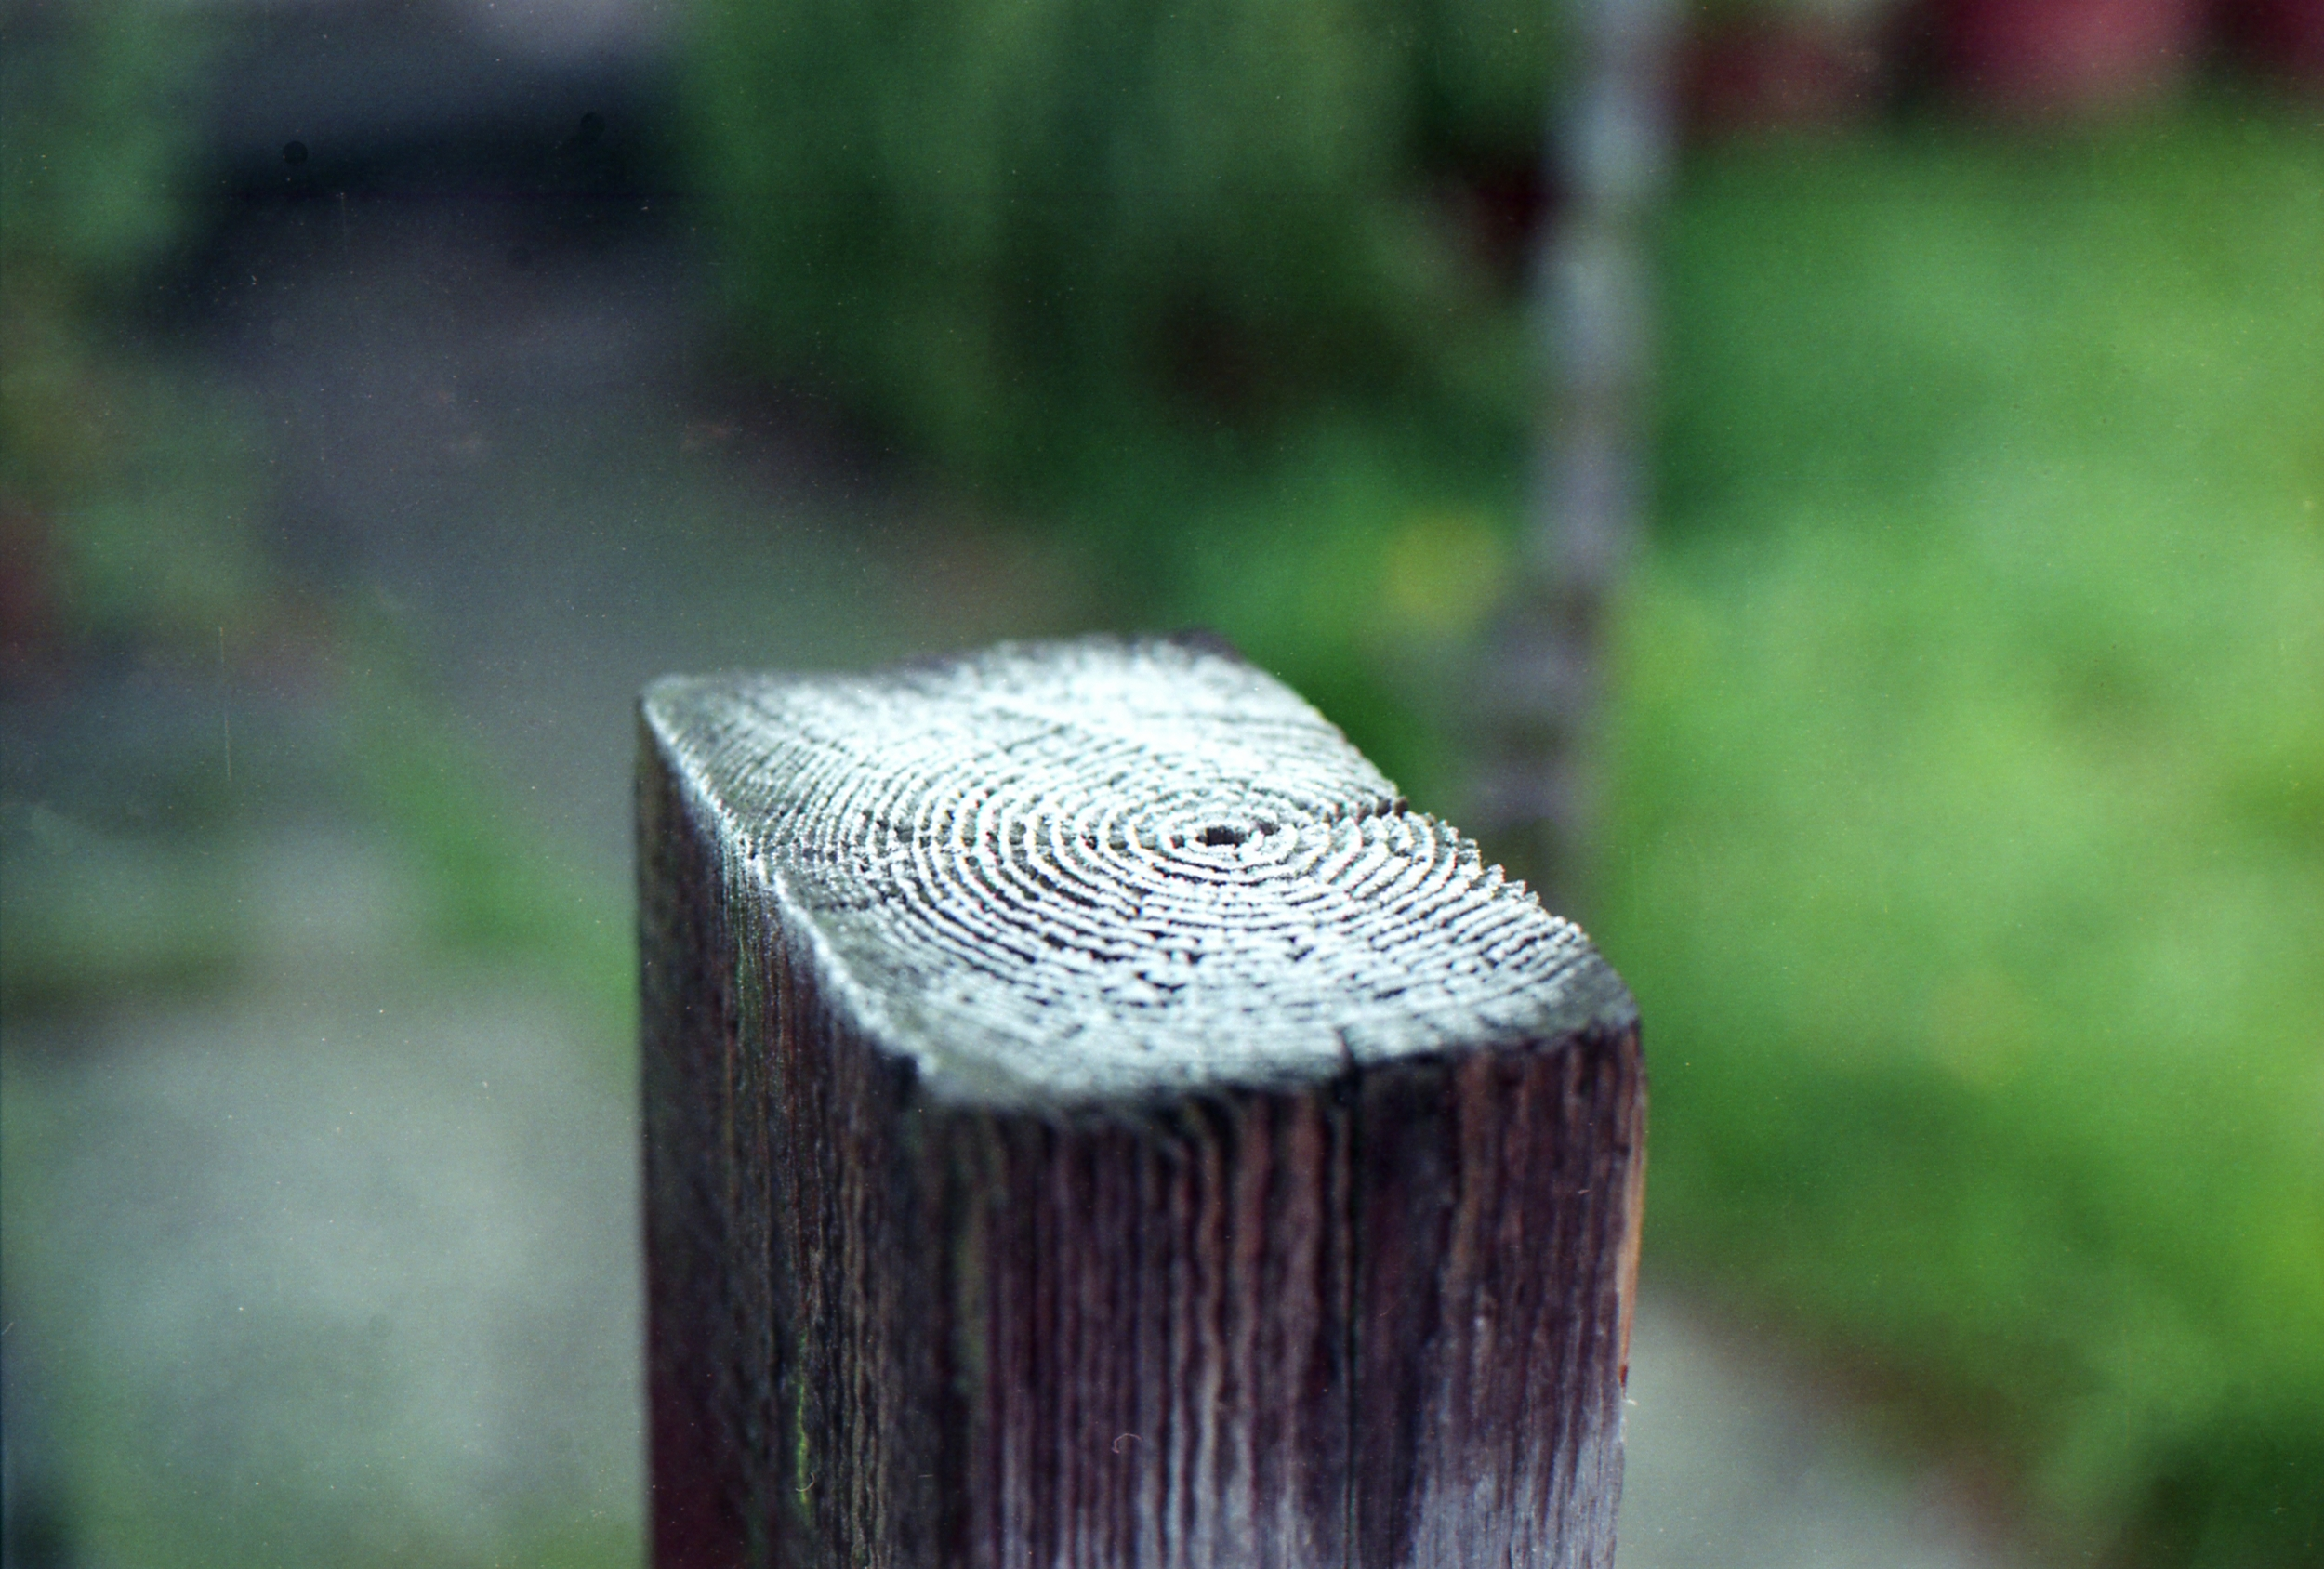 Day 119 - Frost on the fence post